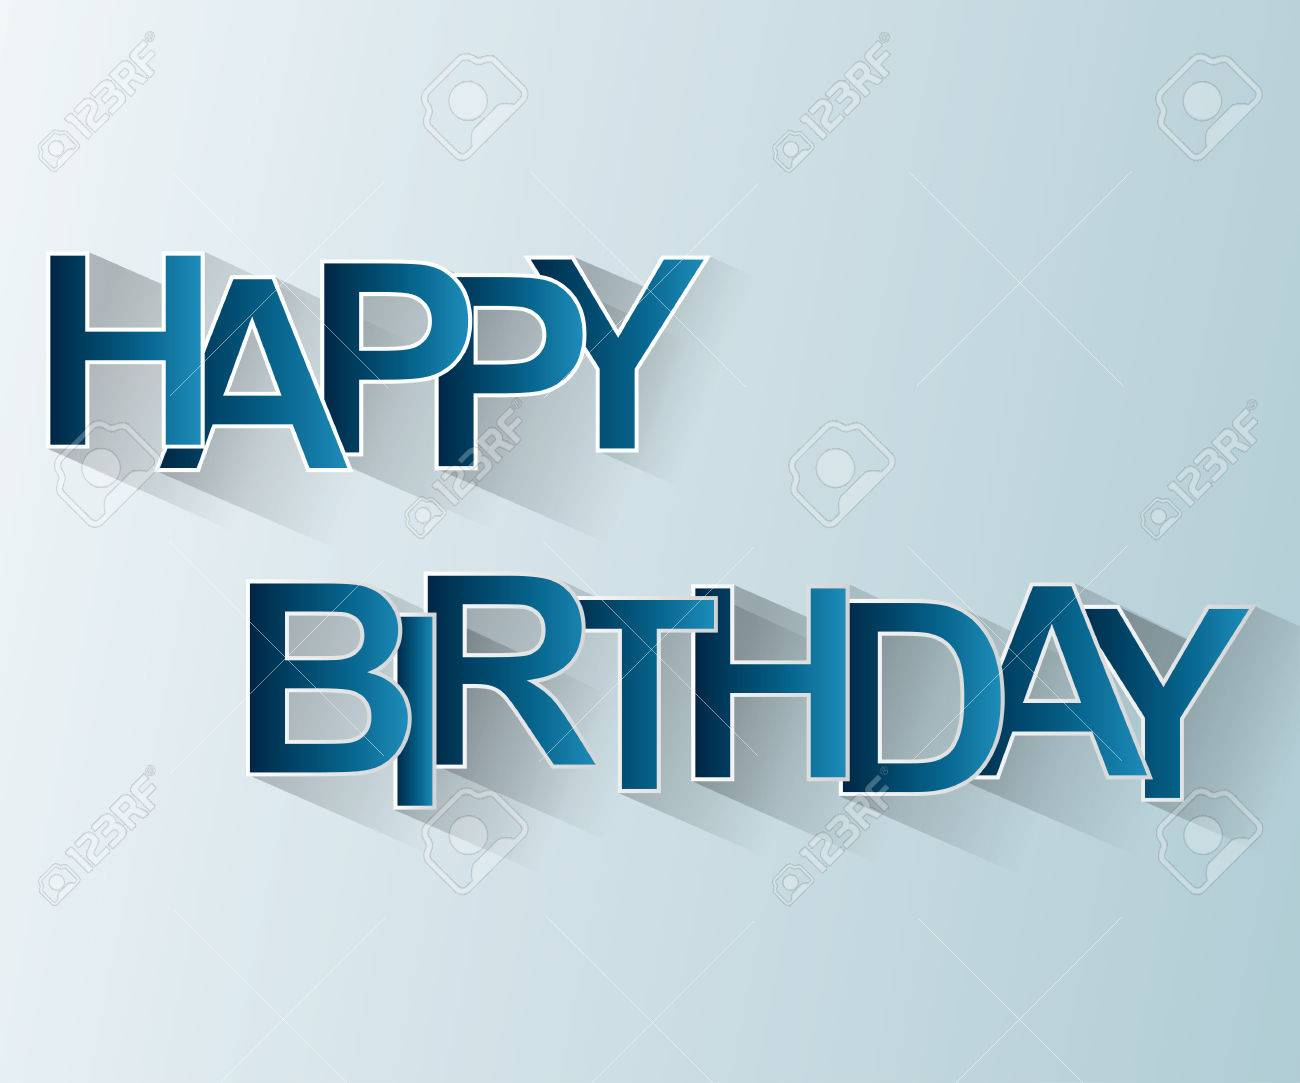 Happy Birthday Card Easy To Edit Adjust Color And Size Stock Vector